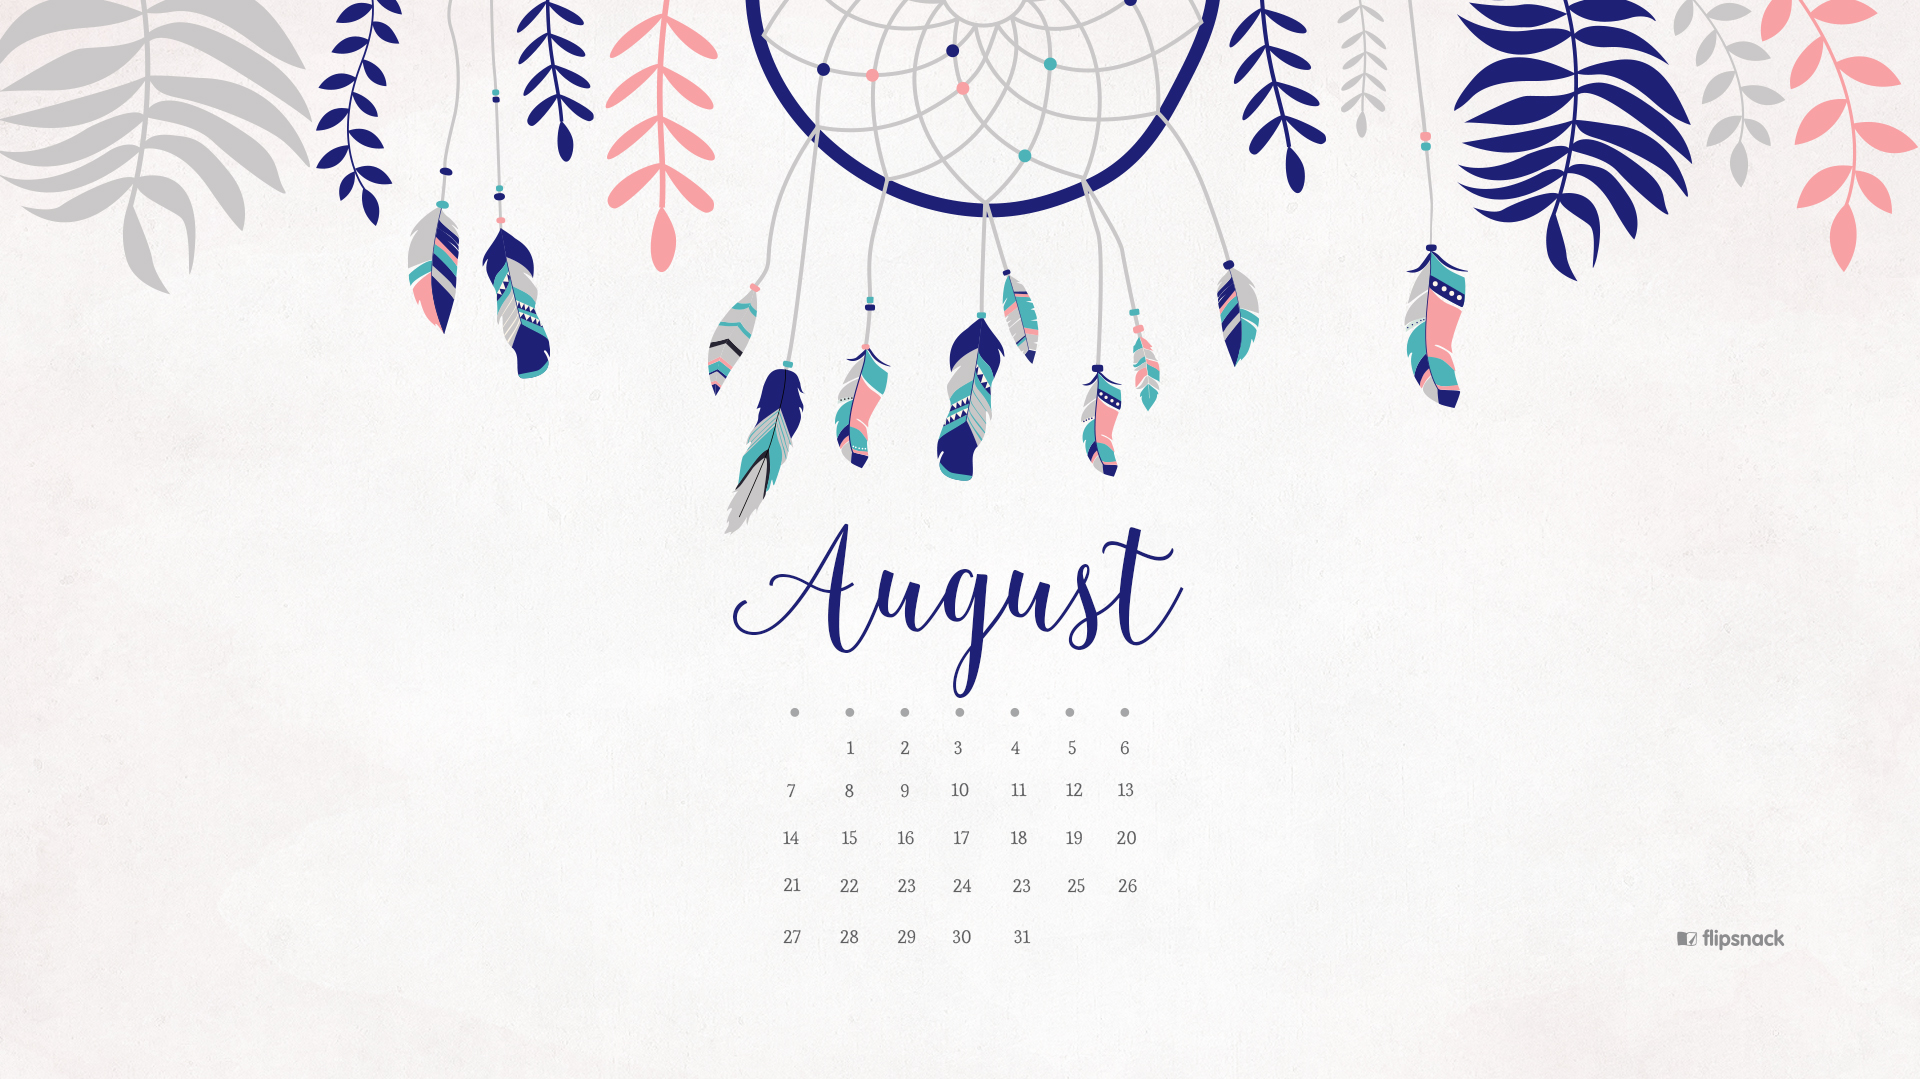 Calendar Computer Wallpaper : August free calendar desktop wallpaper